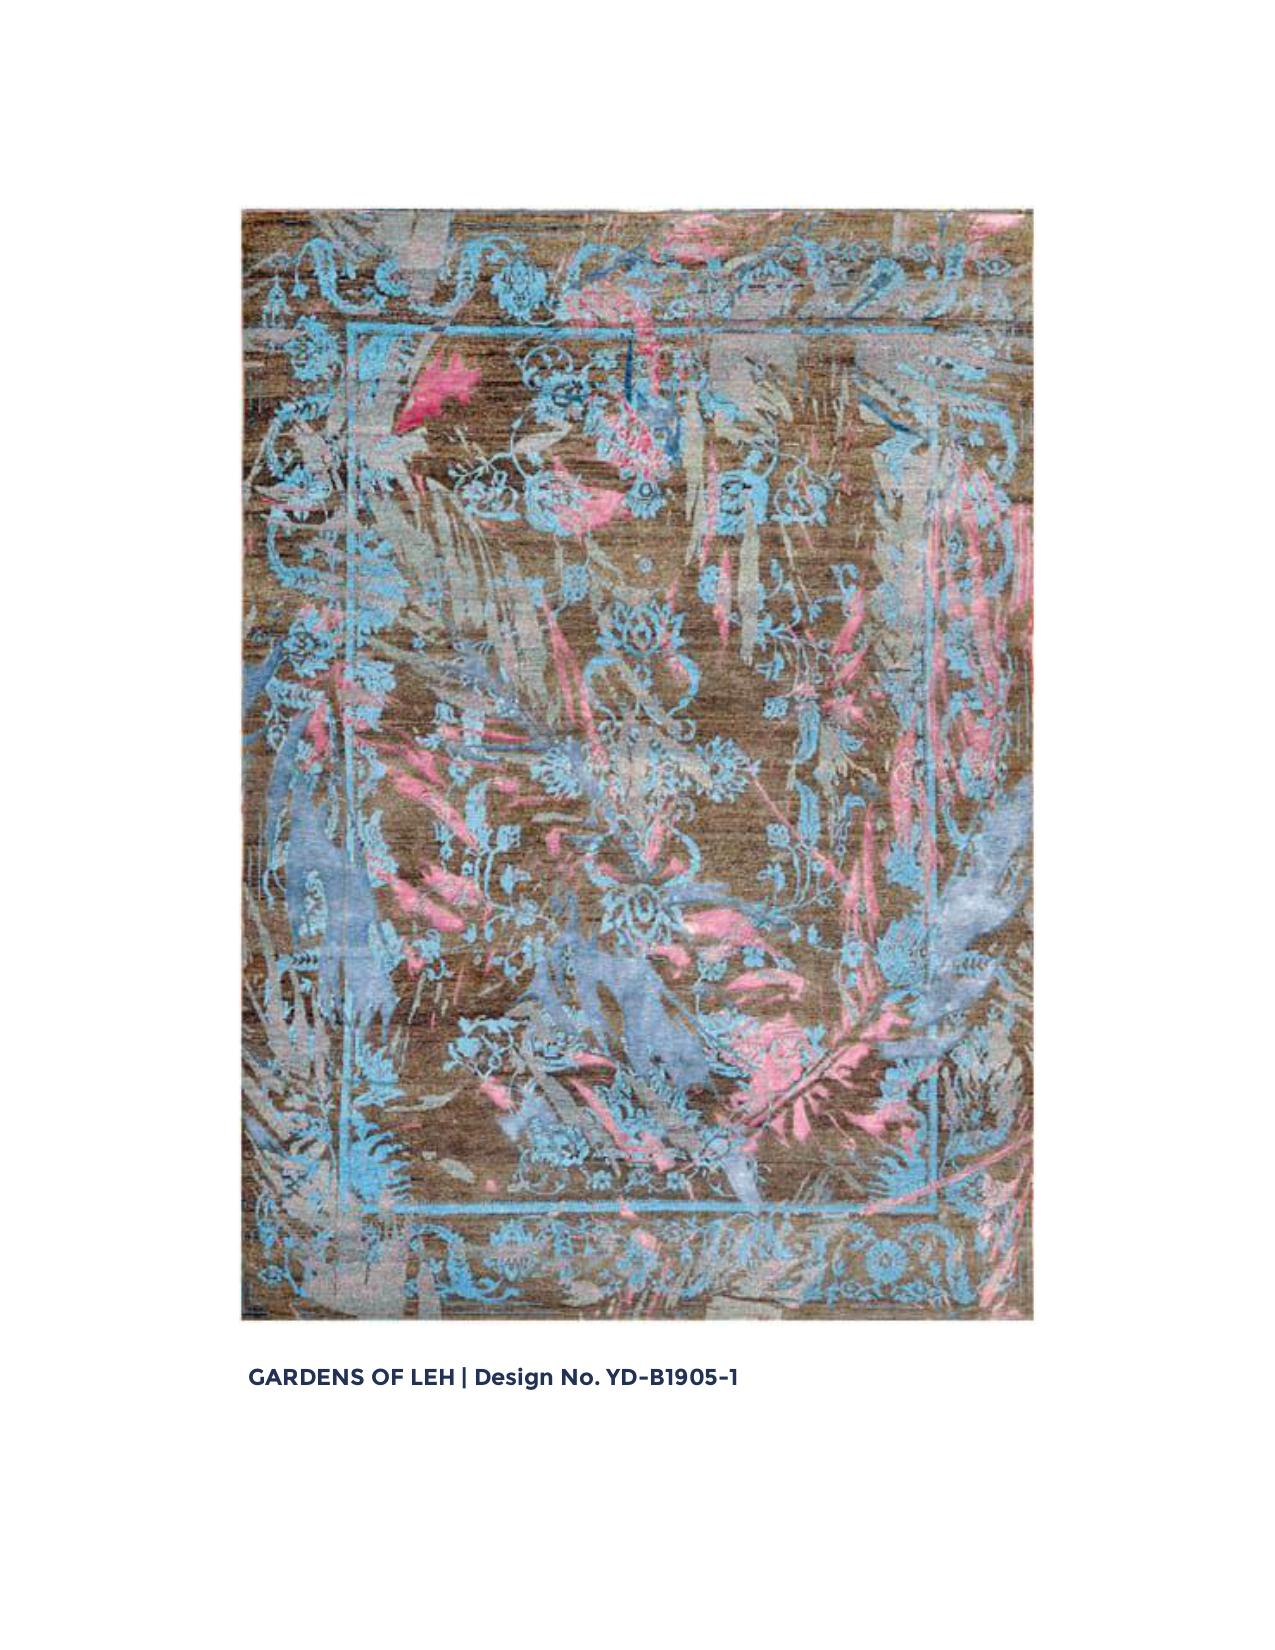 Hand_Knotted_CC_1905_7.jpg